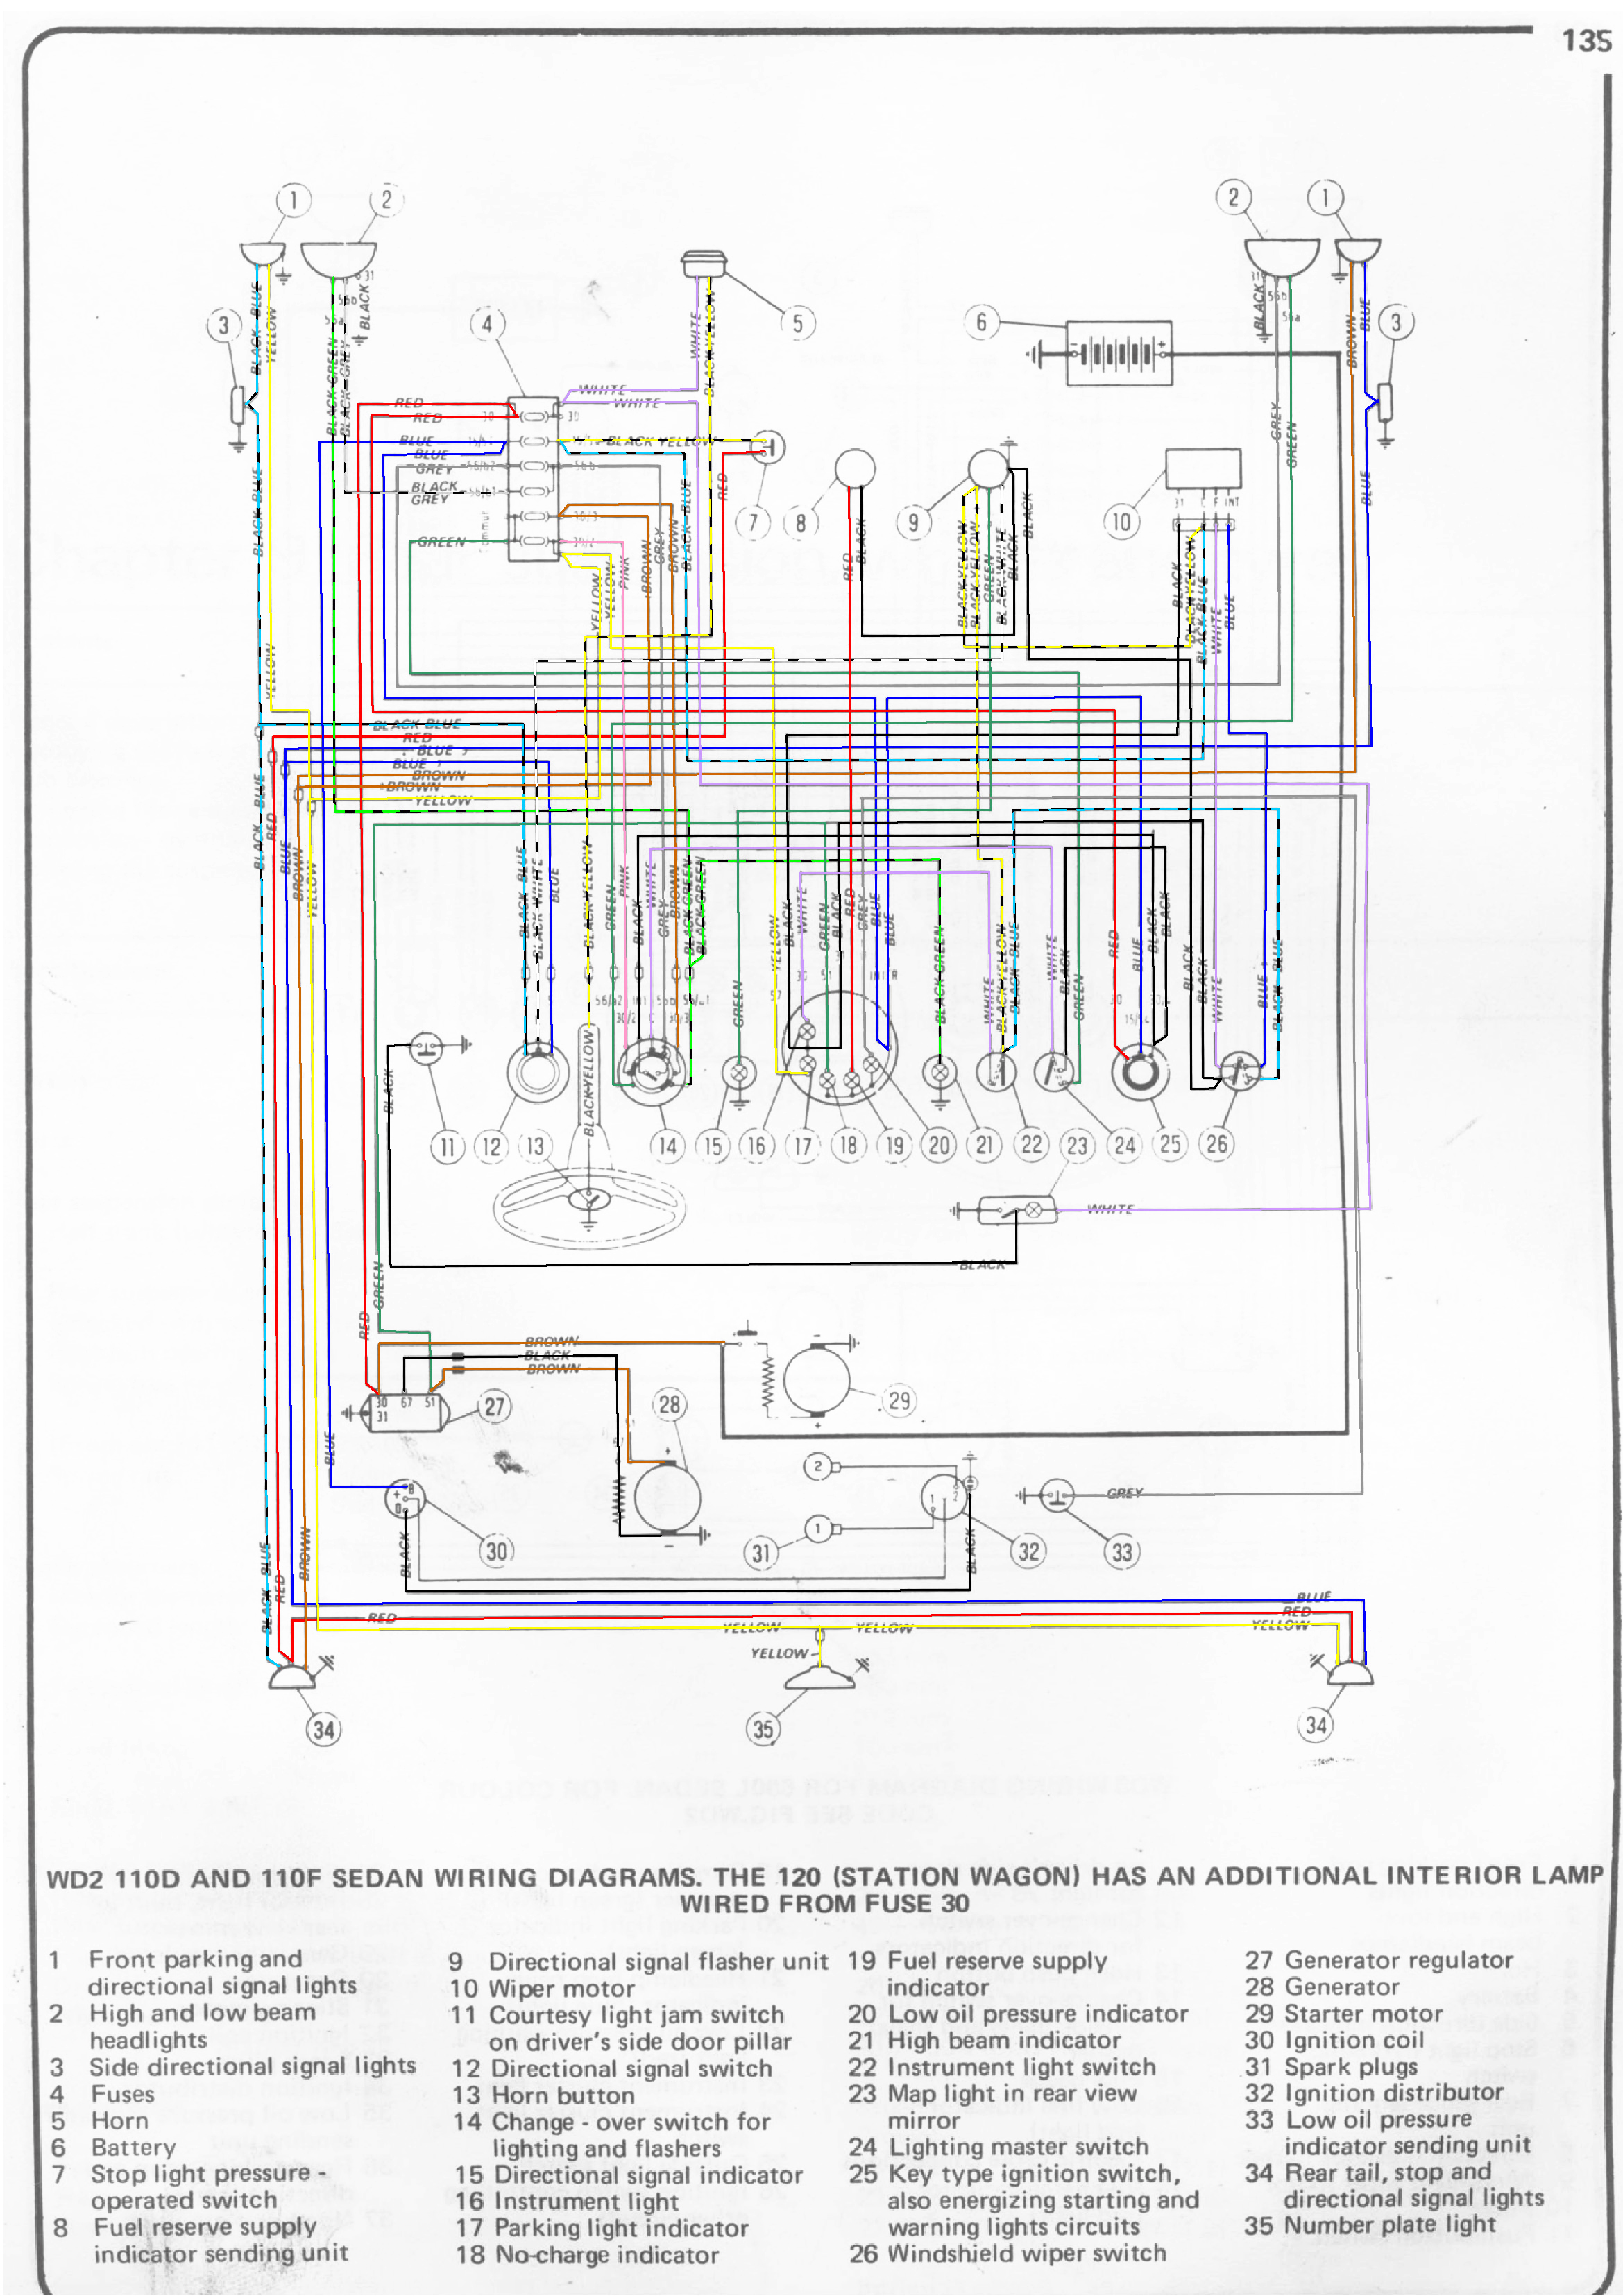 Peugeot 407 Radio Wiring Diagram Html Auto Engine And Parts 406 Airbag 307 Stereo Moreover Fuse Box Further Clarion